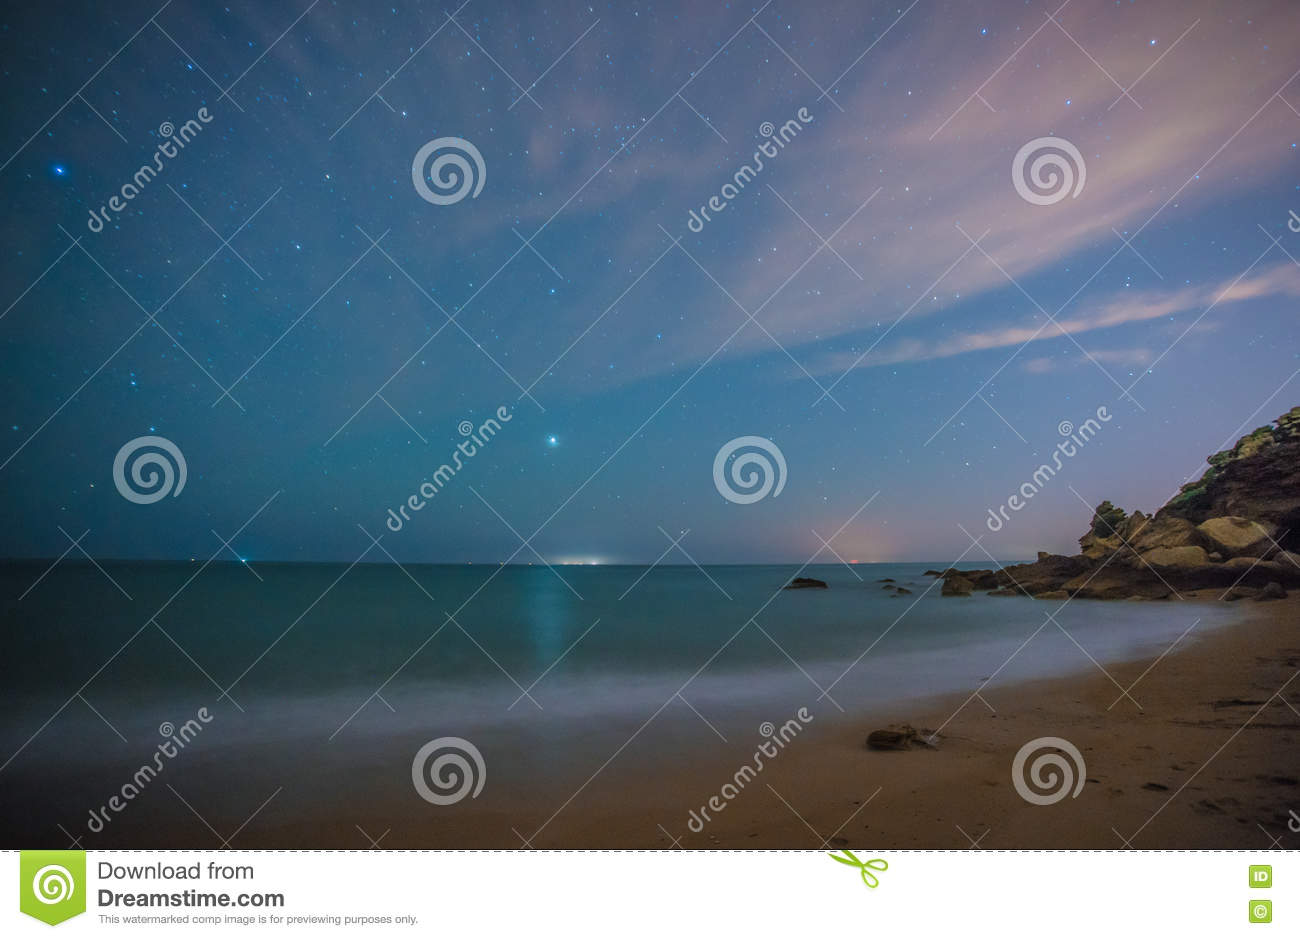 1ba3f373fabae The Stars In A Perfect Night In A Beach Stock Image - Image of ...